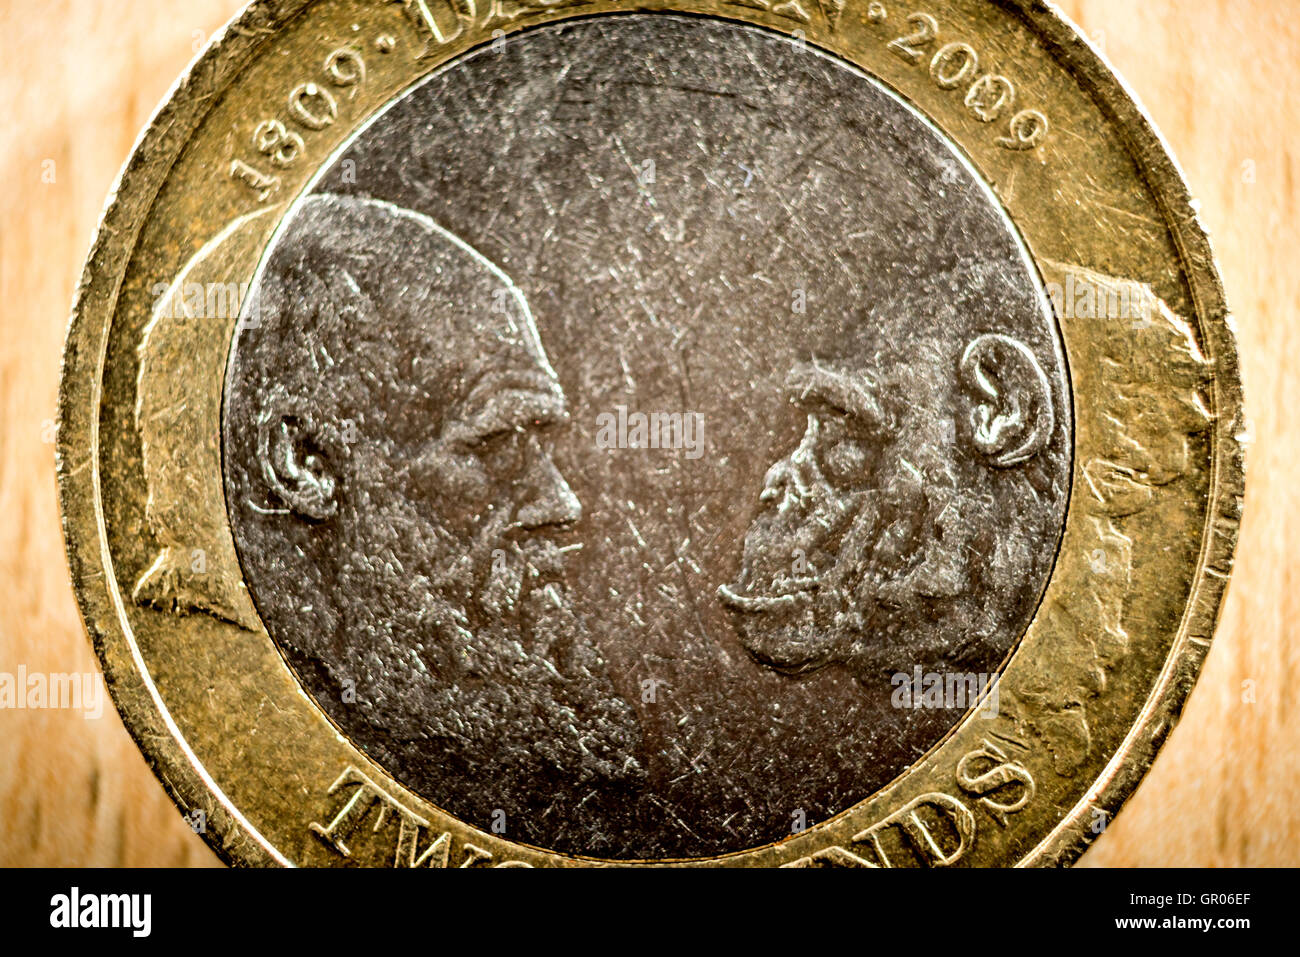 A rare British two pound coin celebrating the 200th anniversary of Charles Darwin's birth. - Stock Image